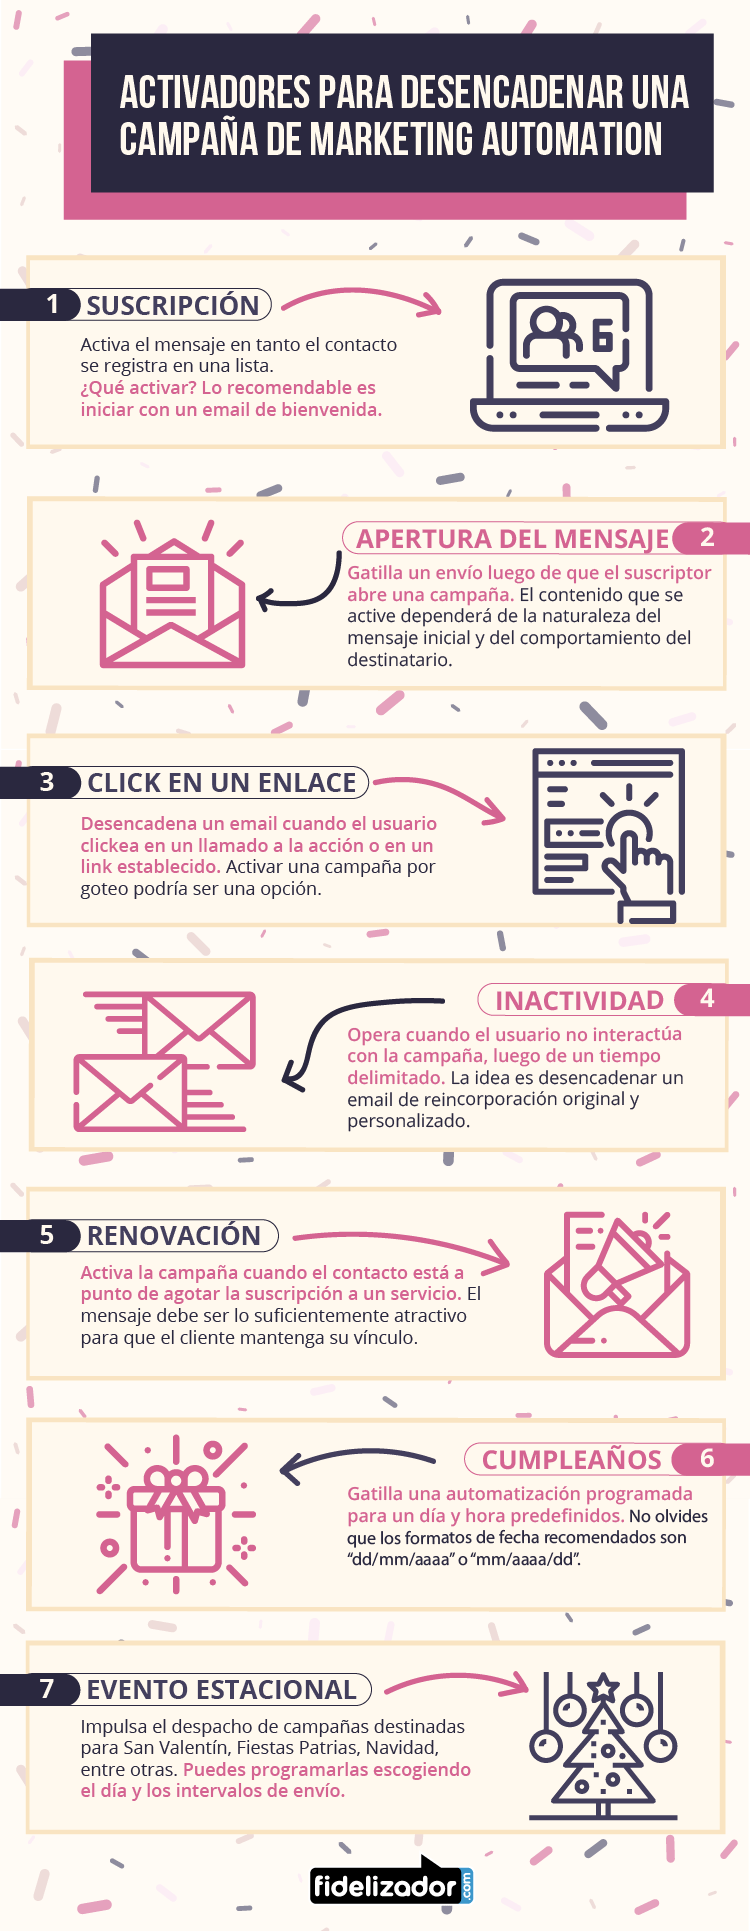 Activadores para desencadenar una campaña de Marketing Automation #infografia #marketing